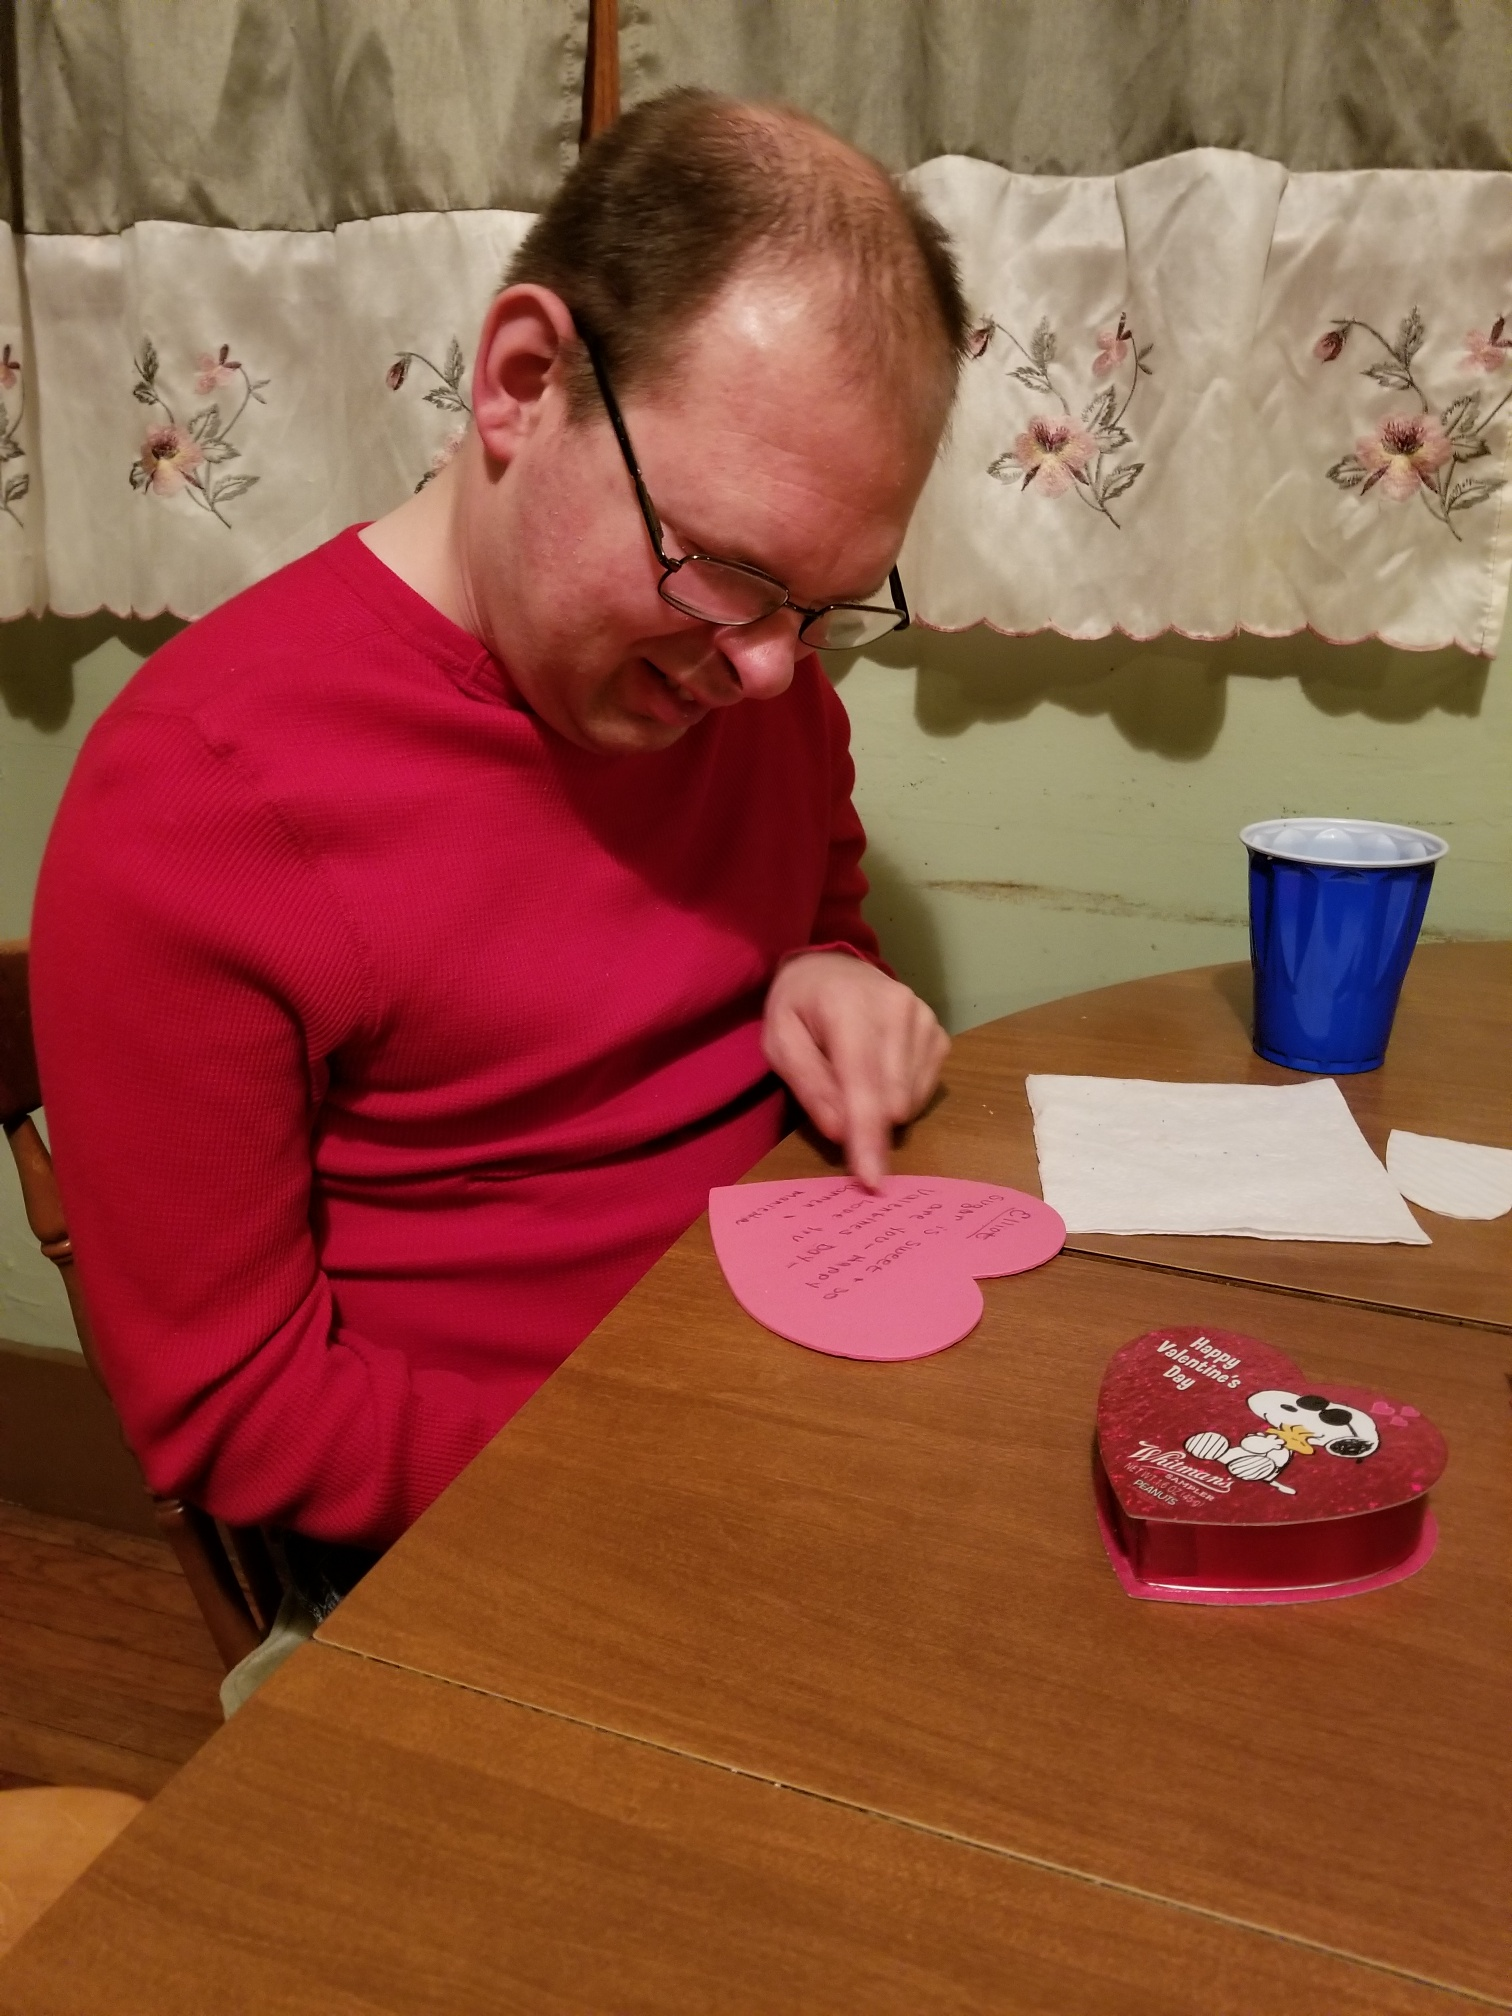 Reading a note from his Valentine.